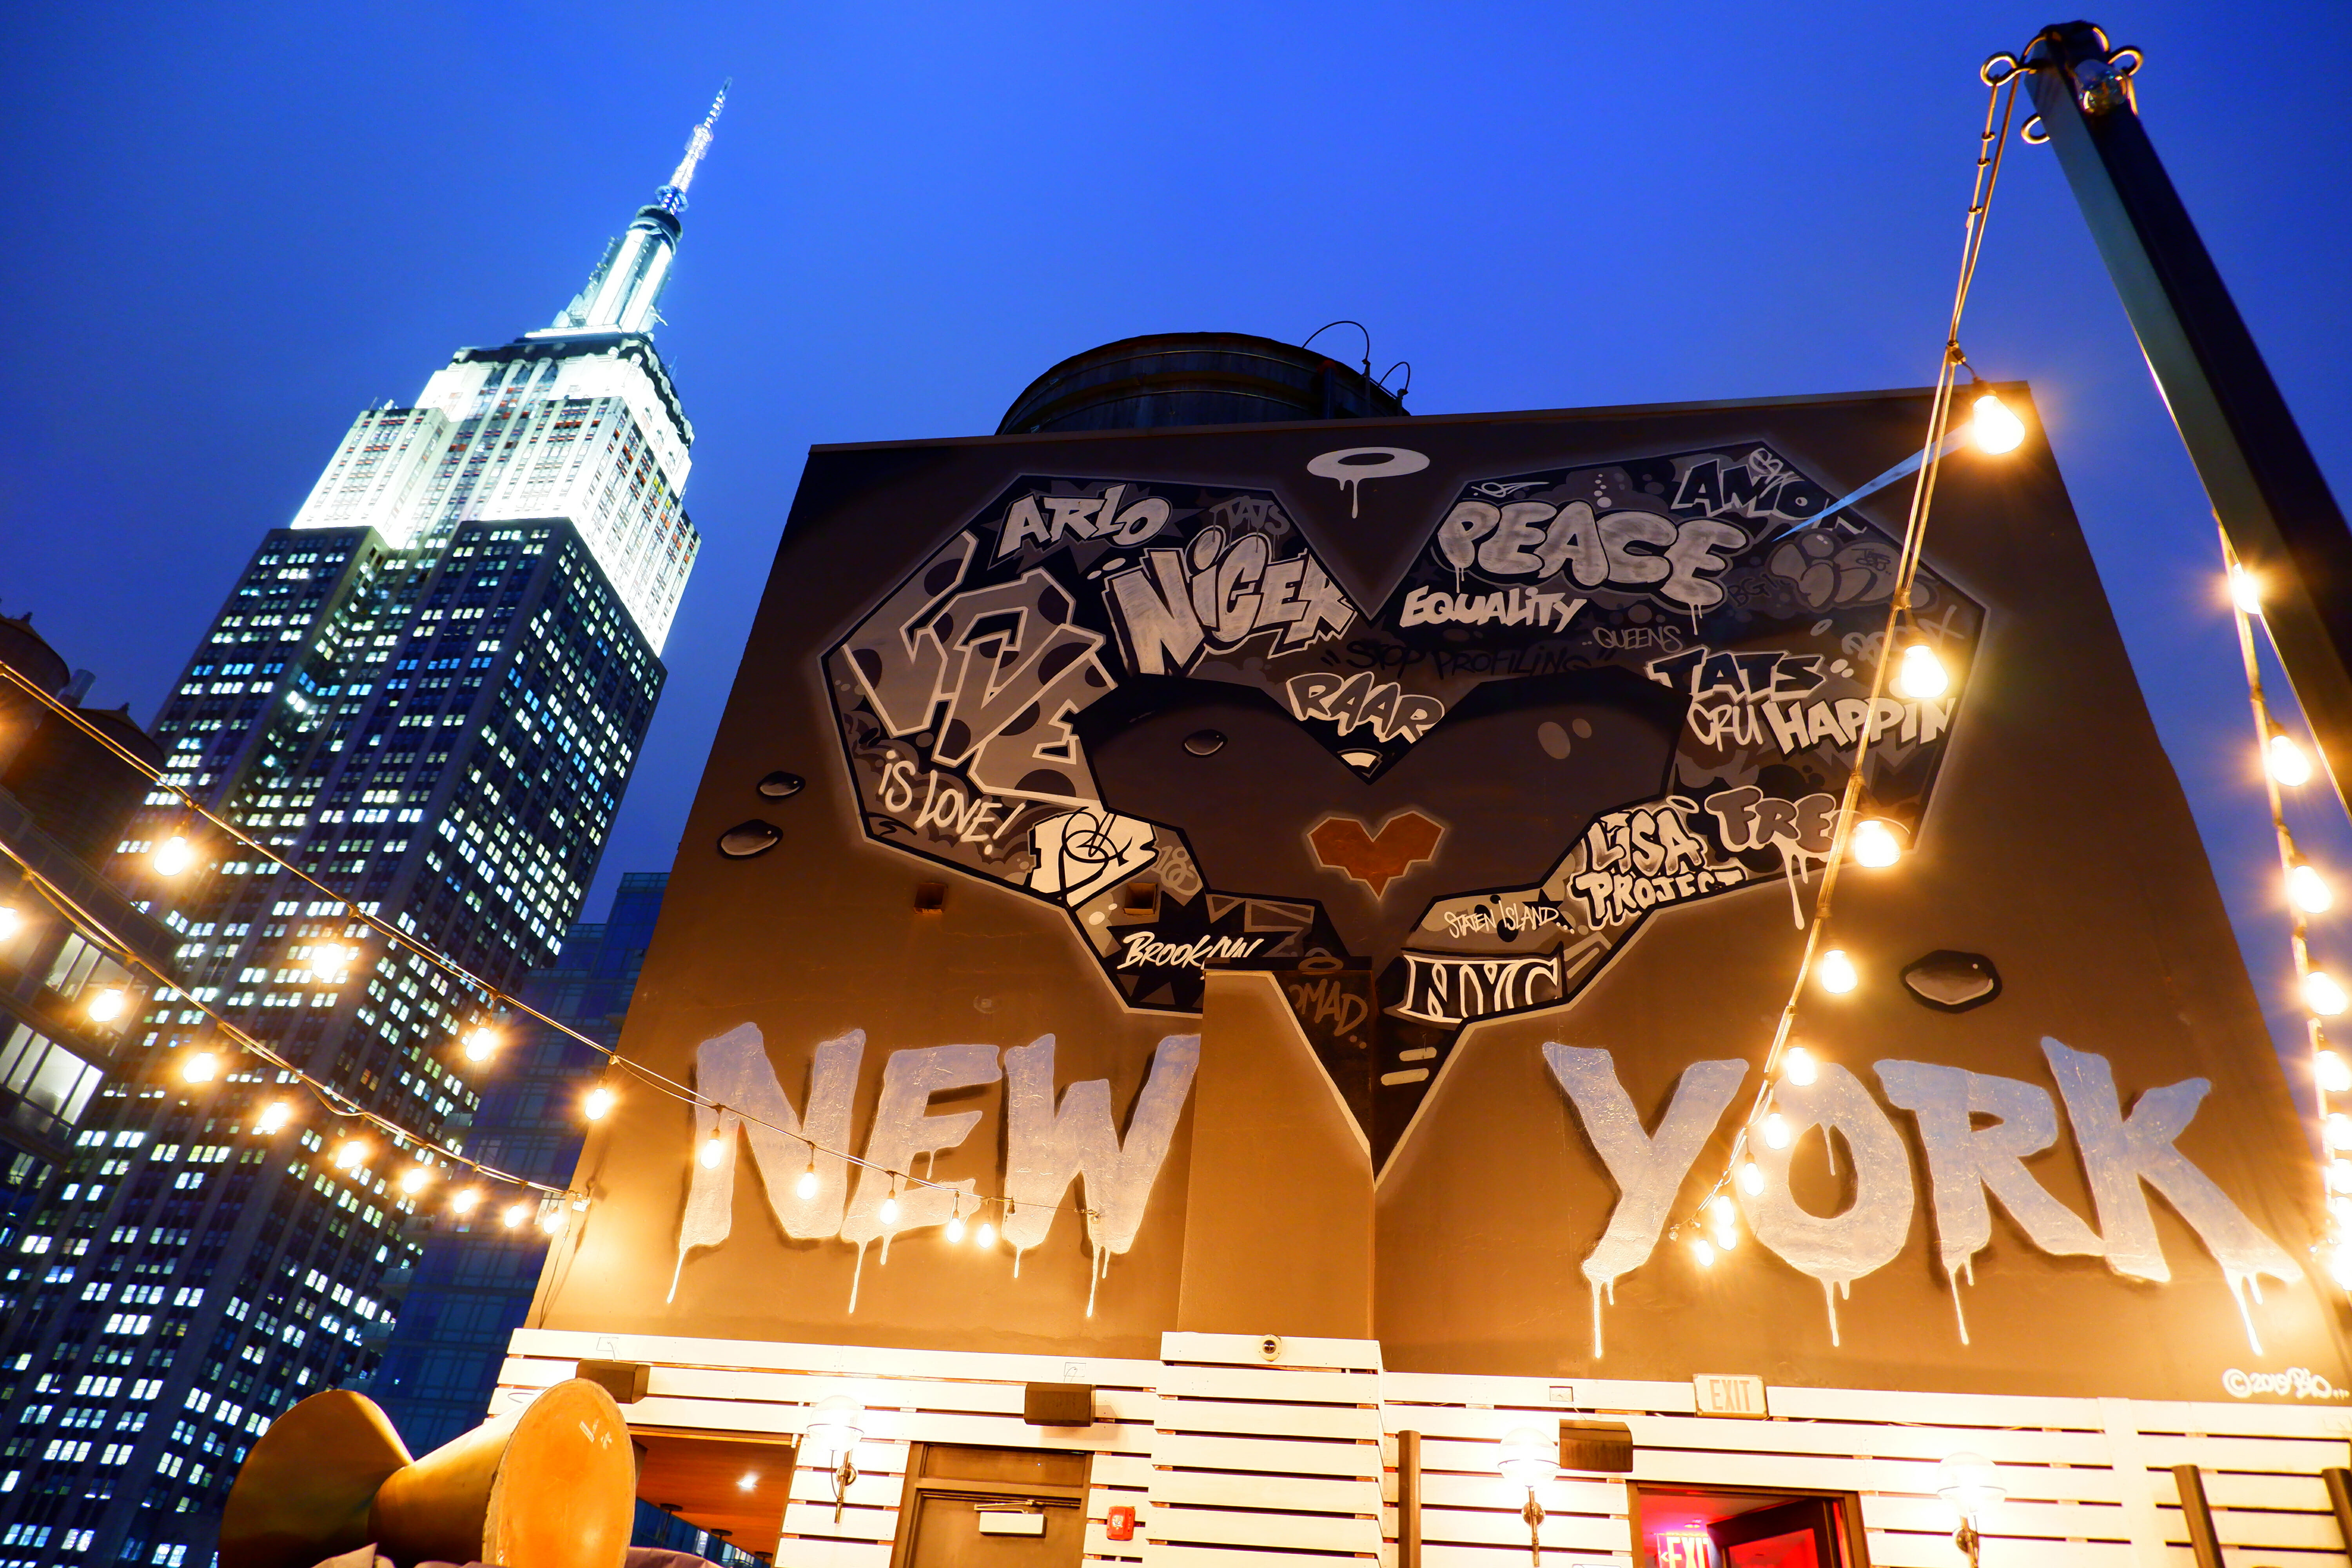 Street Art in NYC High Quality Wallpaper